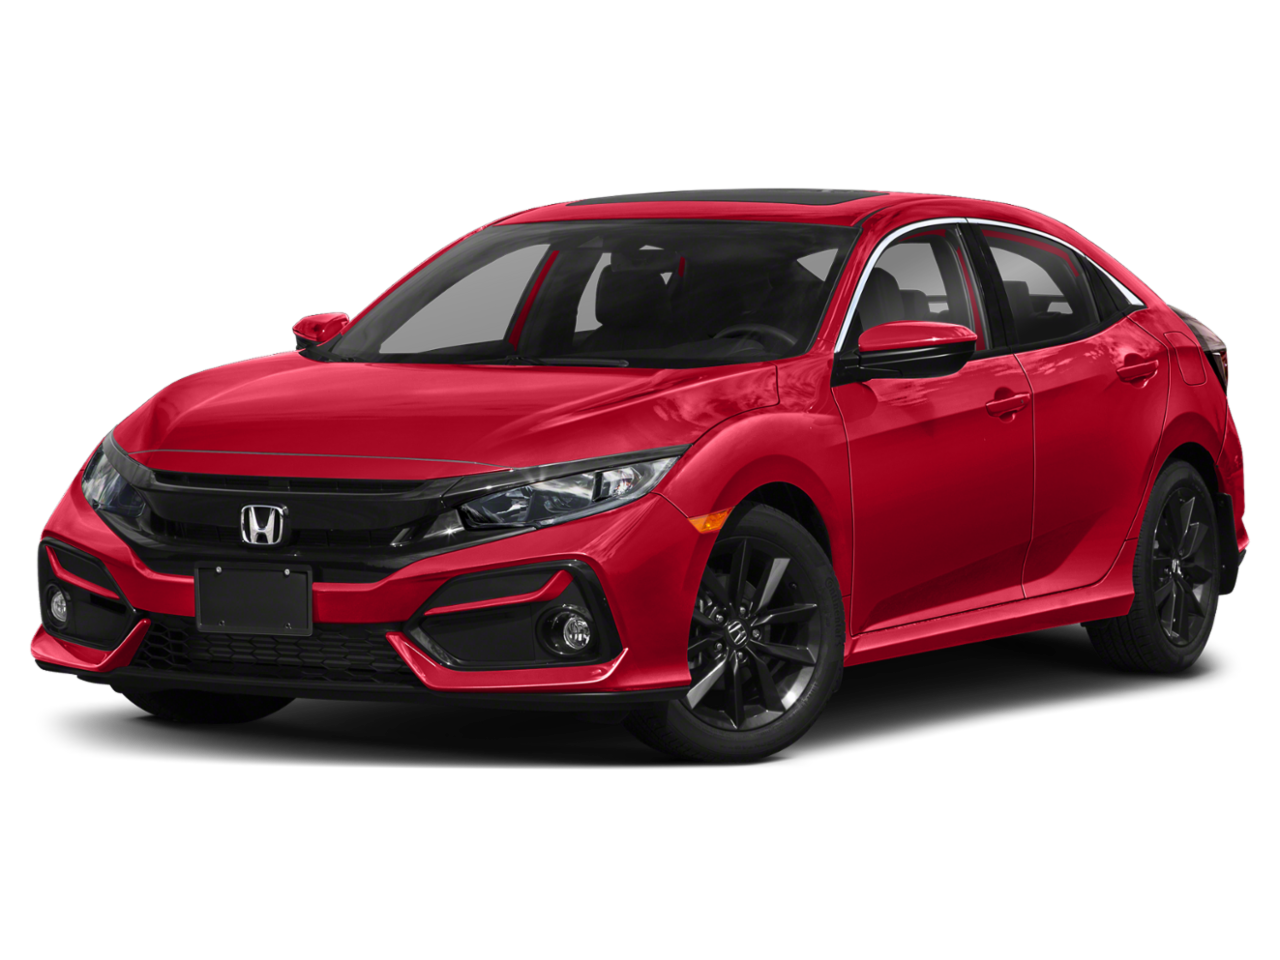 Honda 2020 Civic Hatchback EX-L